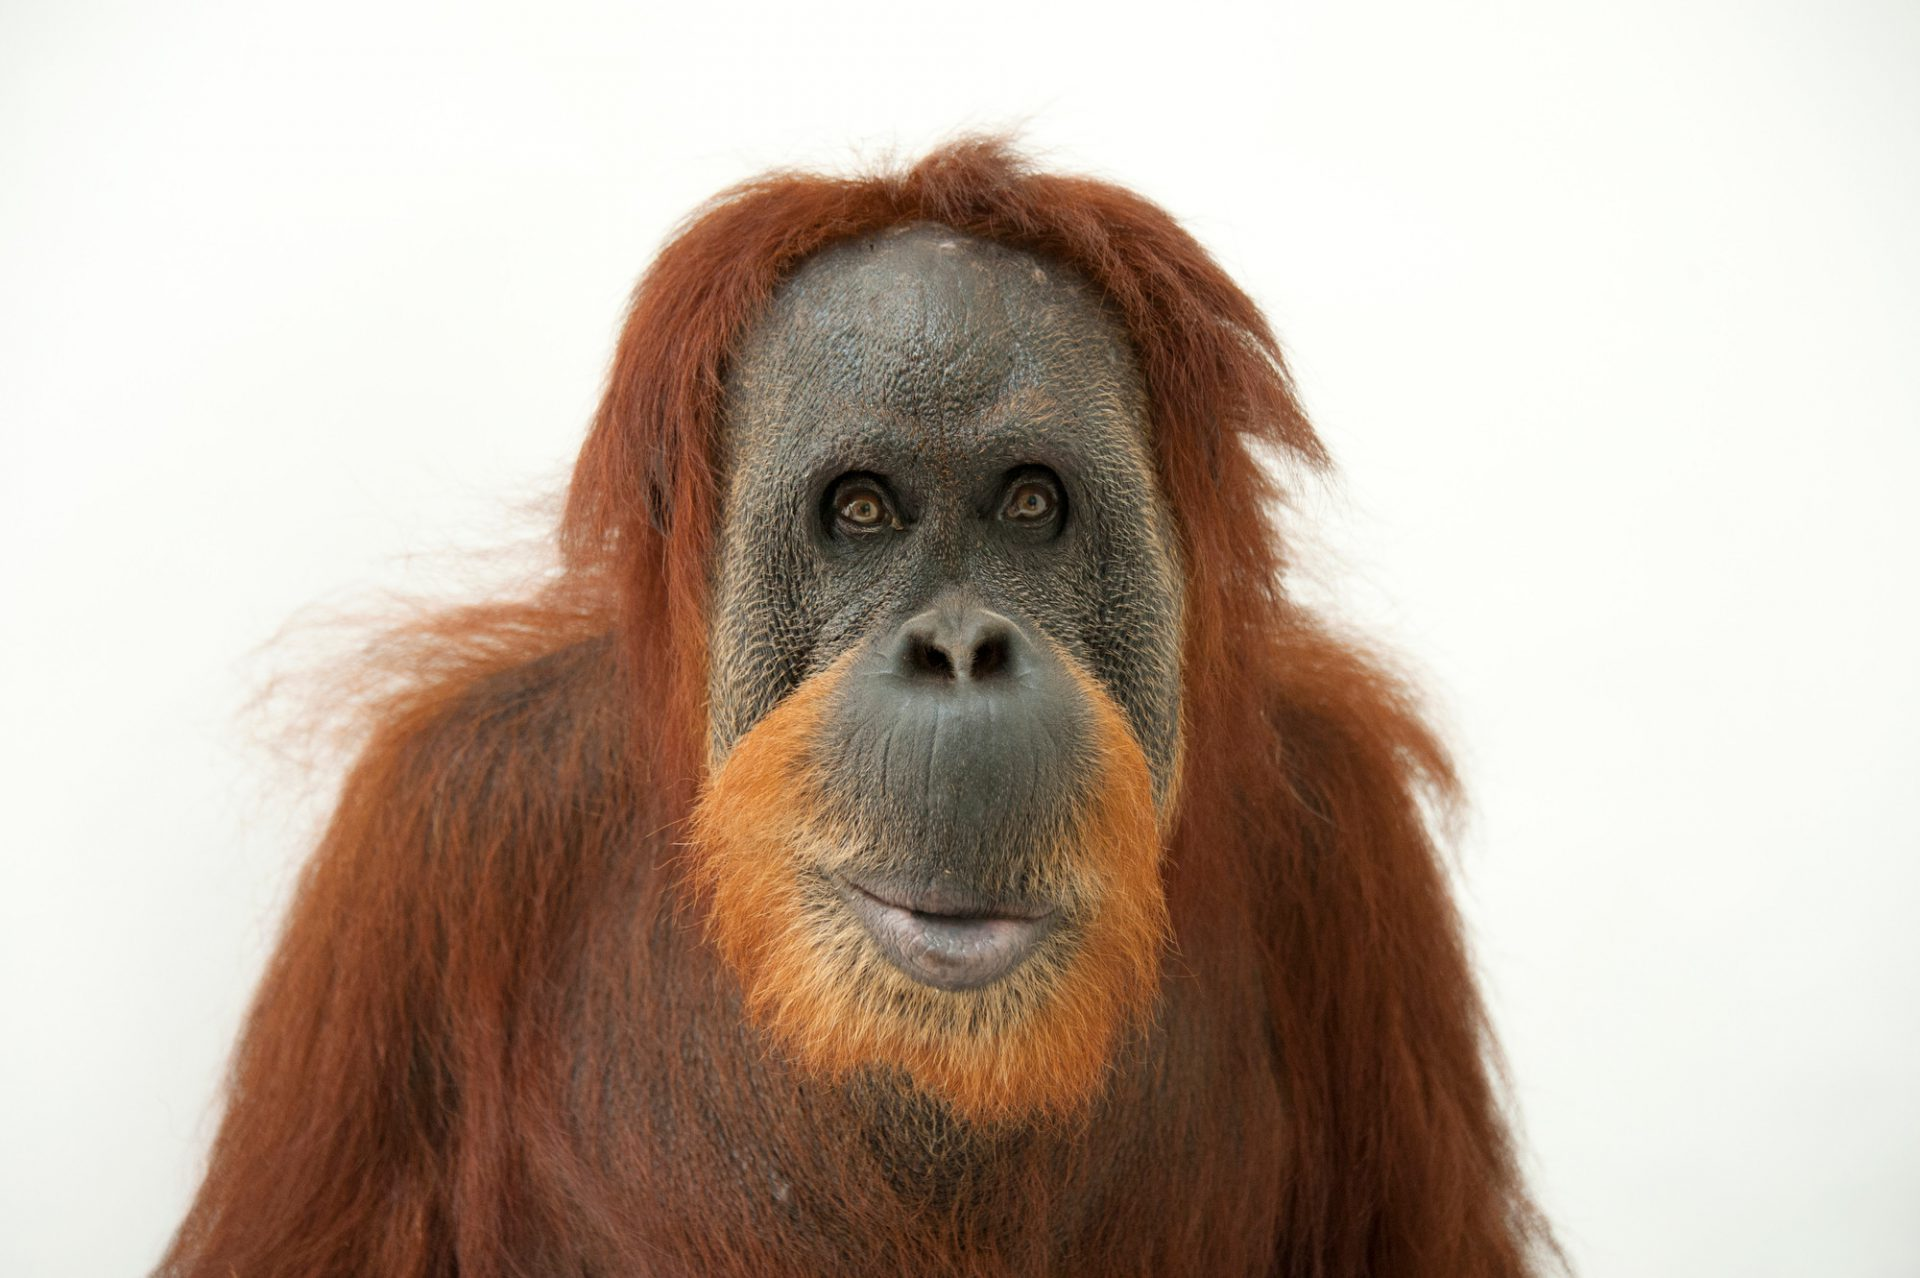 A critically endangered Sumatran orangutan (Pongo abelii) named Susie, at the Gladys Porter Zoo.